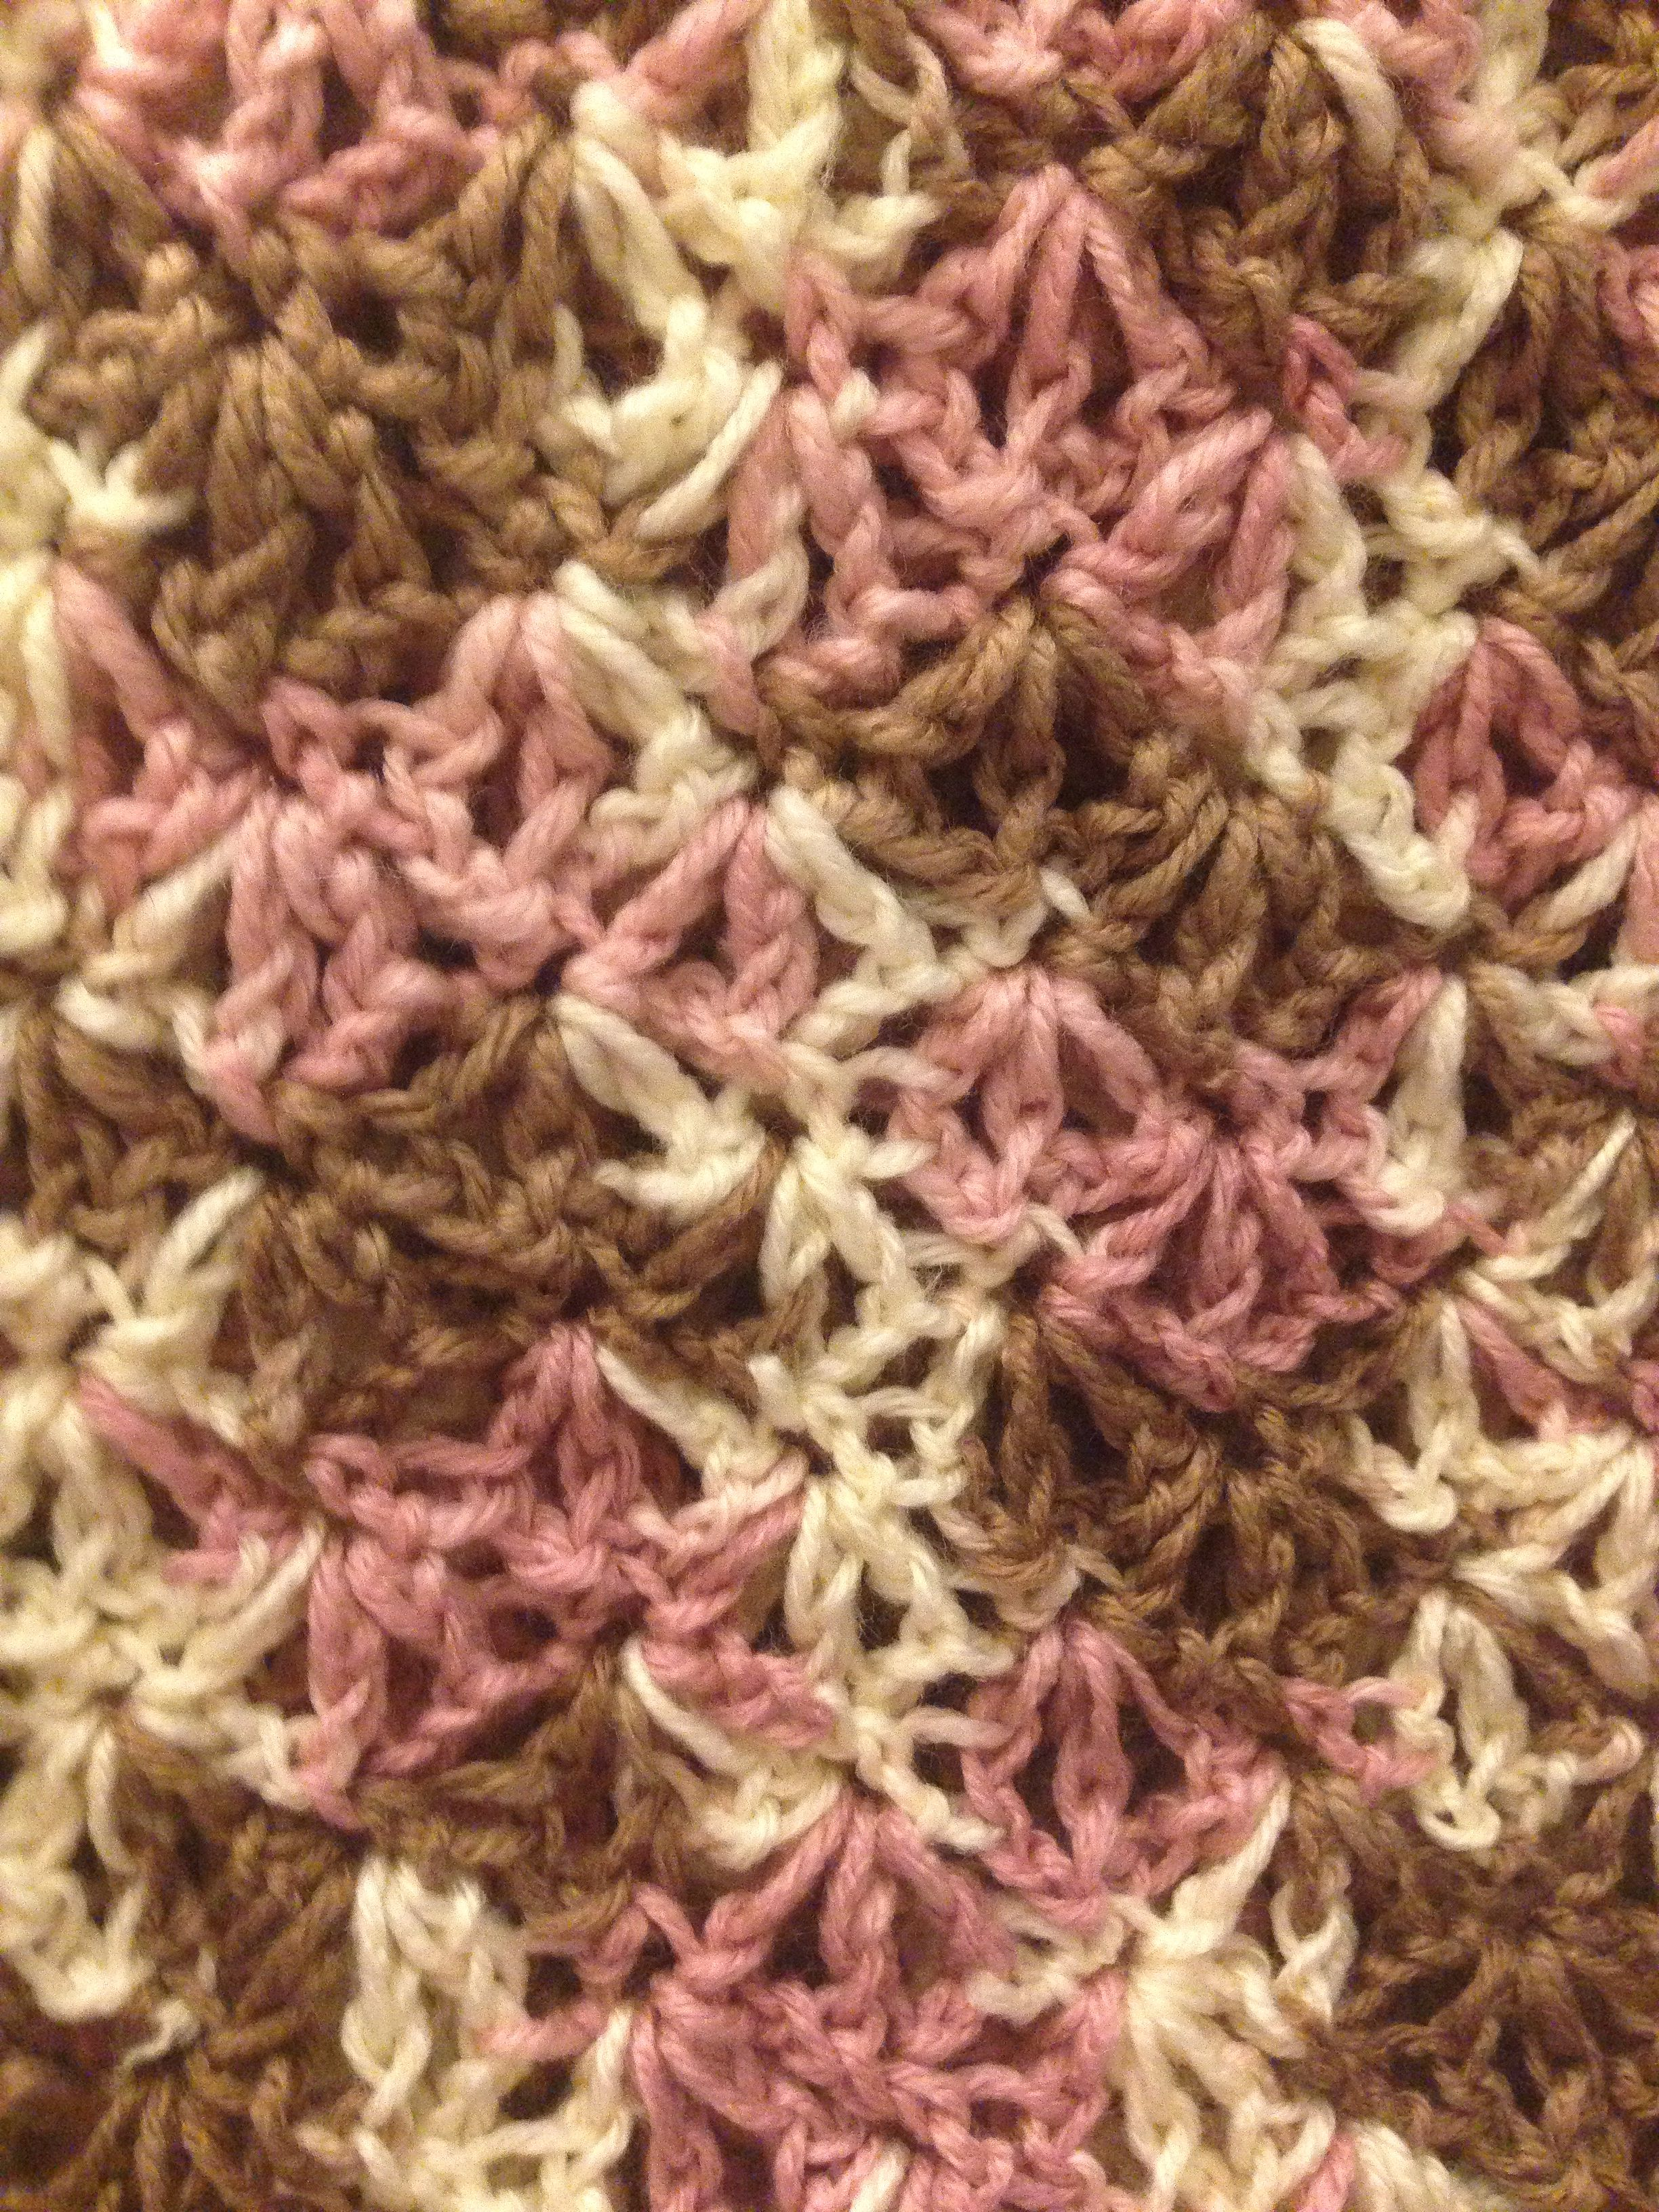 Crochet Stitches For Variegated Yarn : Shell stitch with variegated yarn Knitting and Crocheting Pintere ...